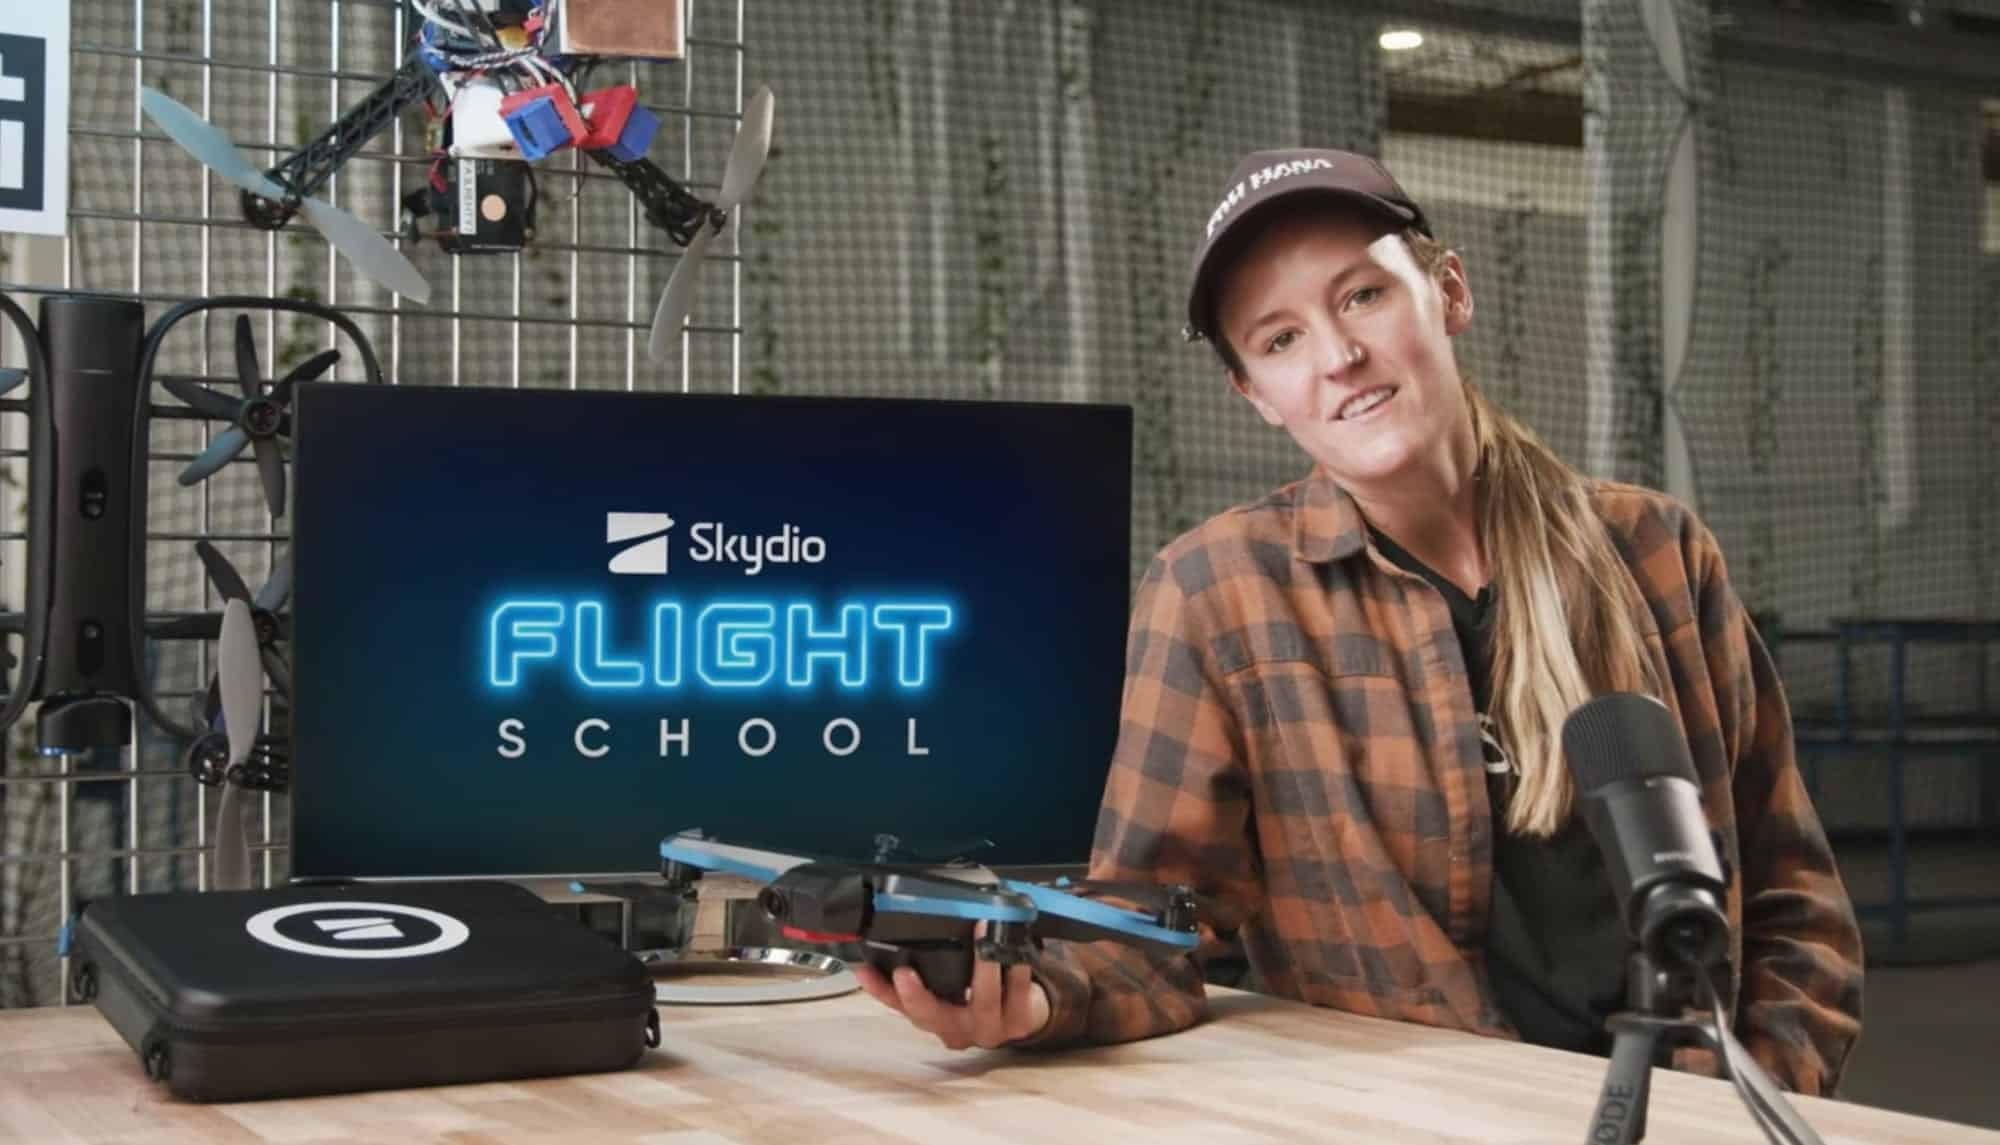 Skydio introduces the Skydio Flight School